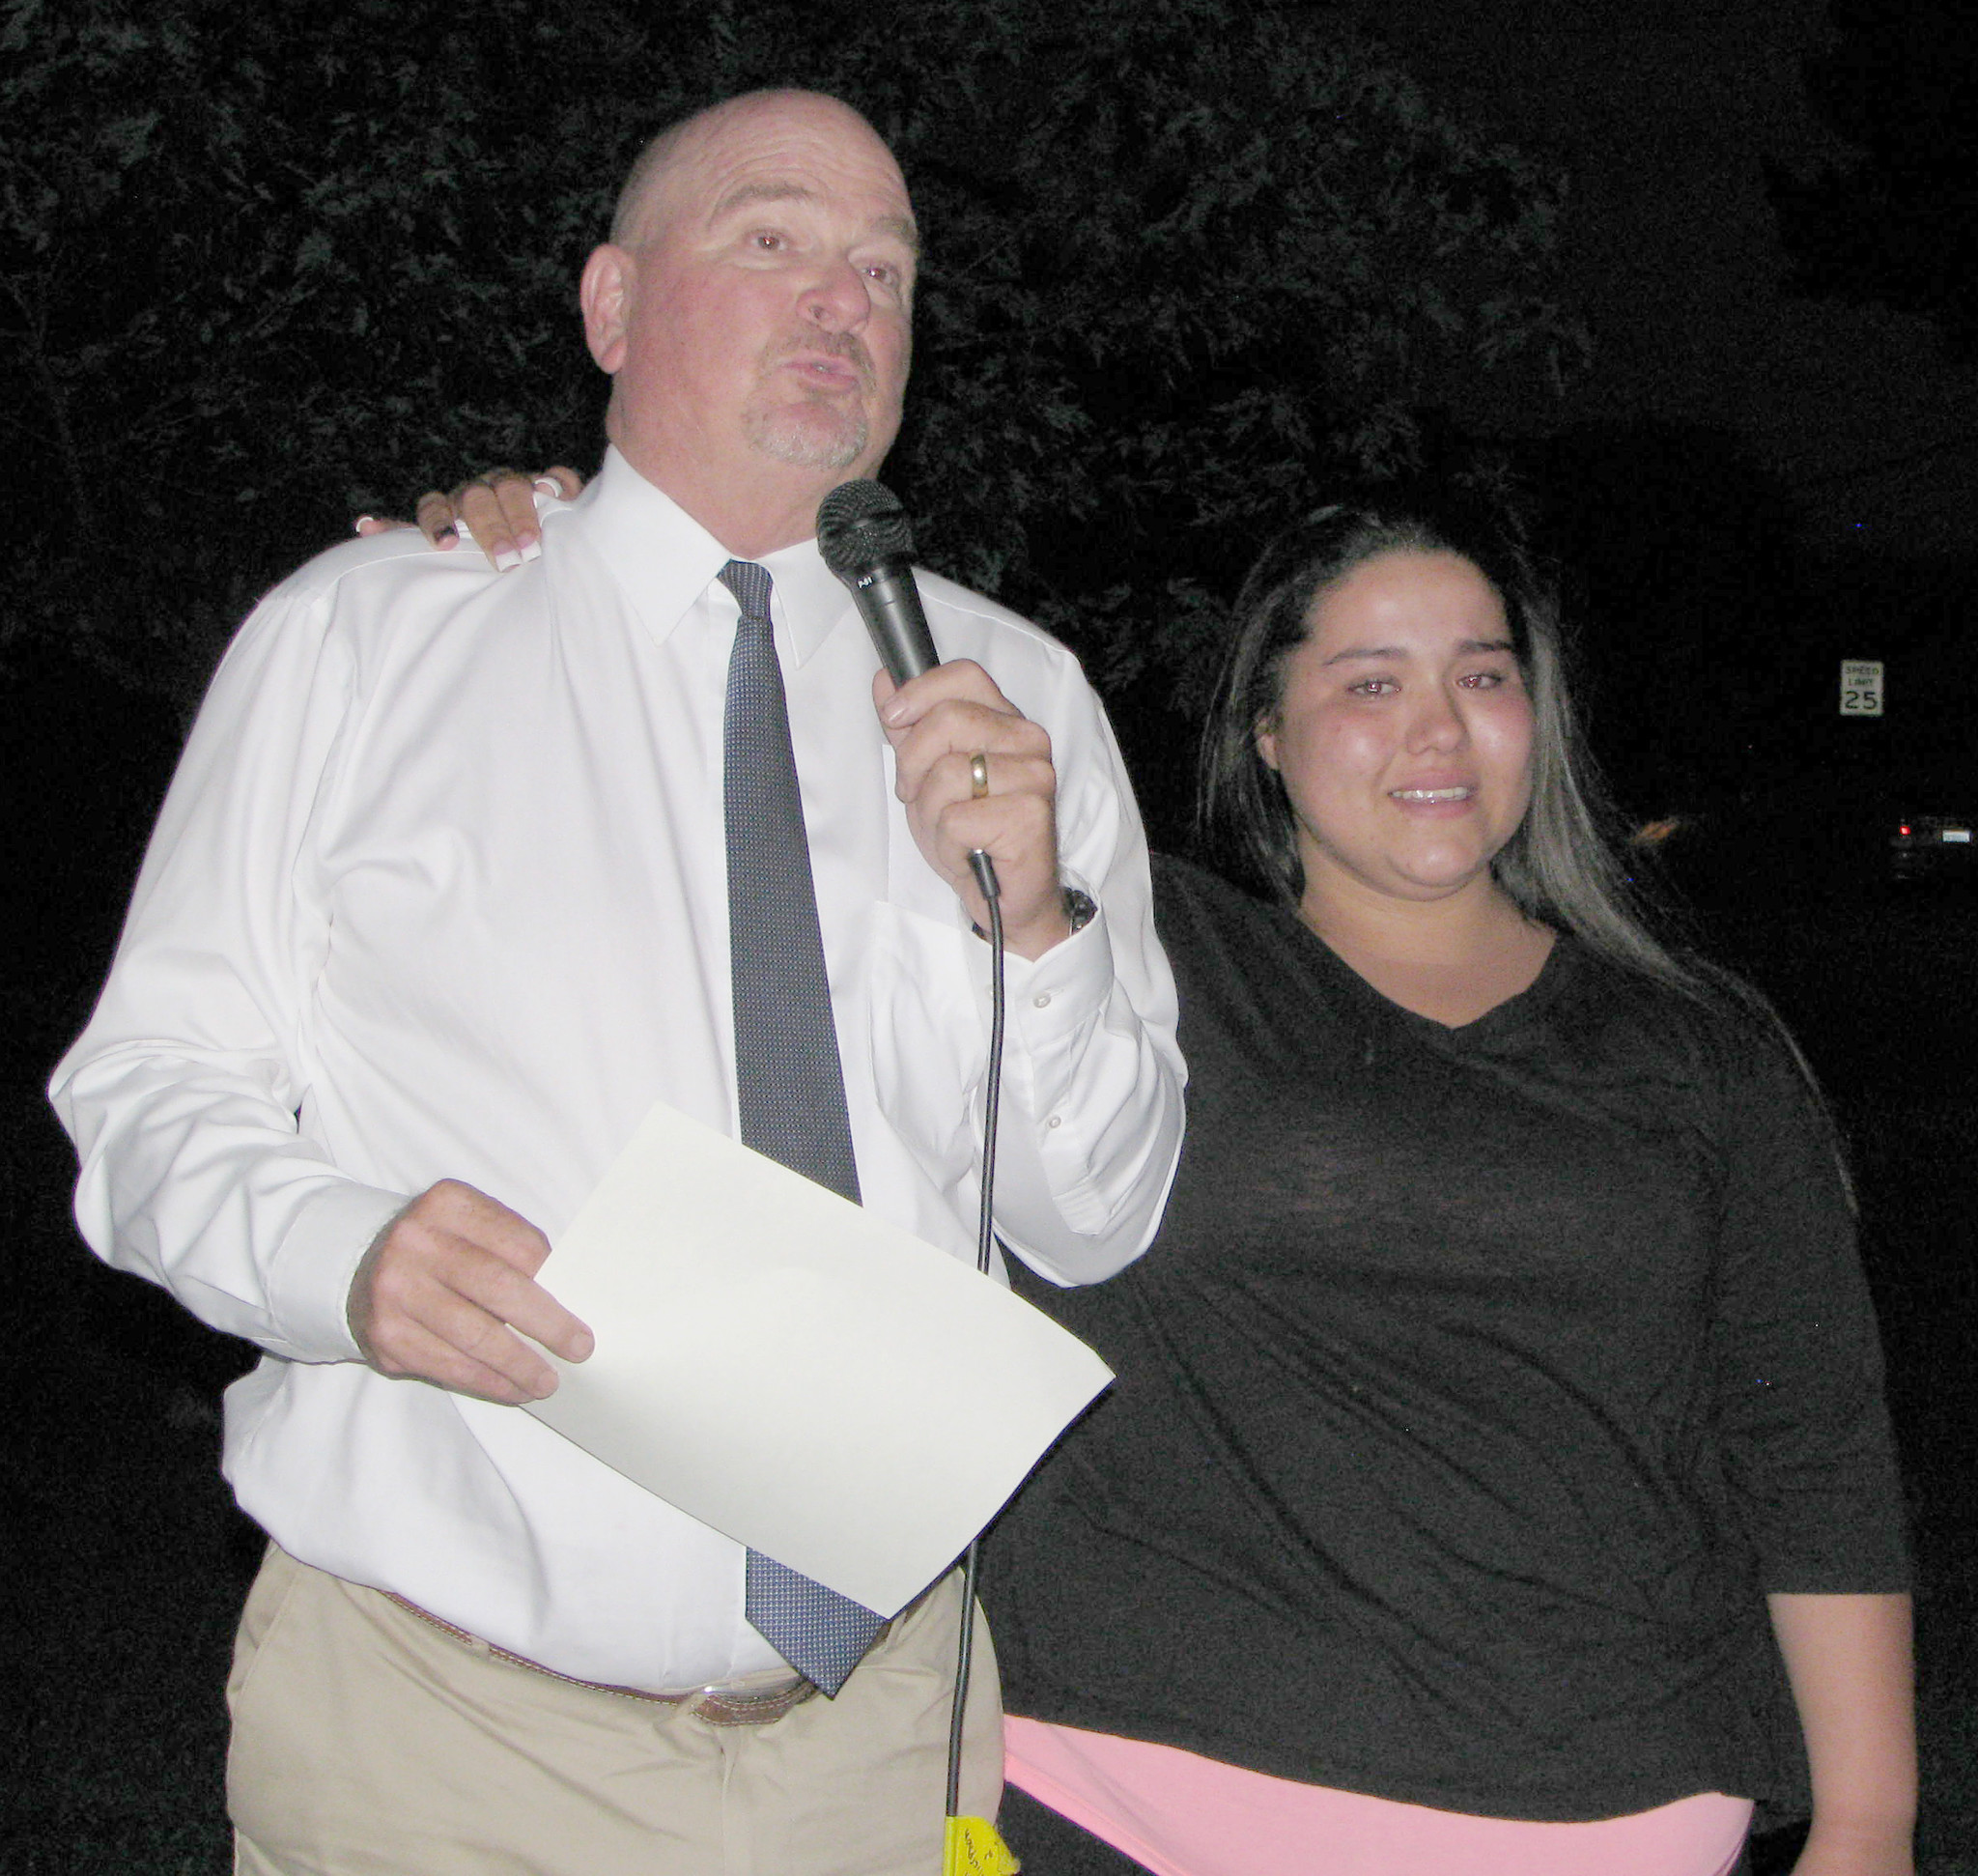 Principal Dave Lohman's words leave Montecito High School 2014 graduate Cierra Ramirez emotional as he tells the audience why Ramirez received the Most Insufferable Award.